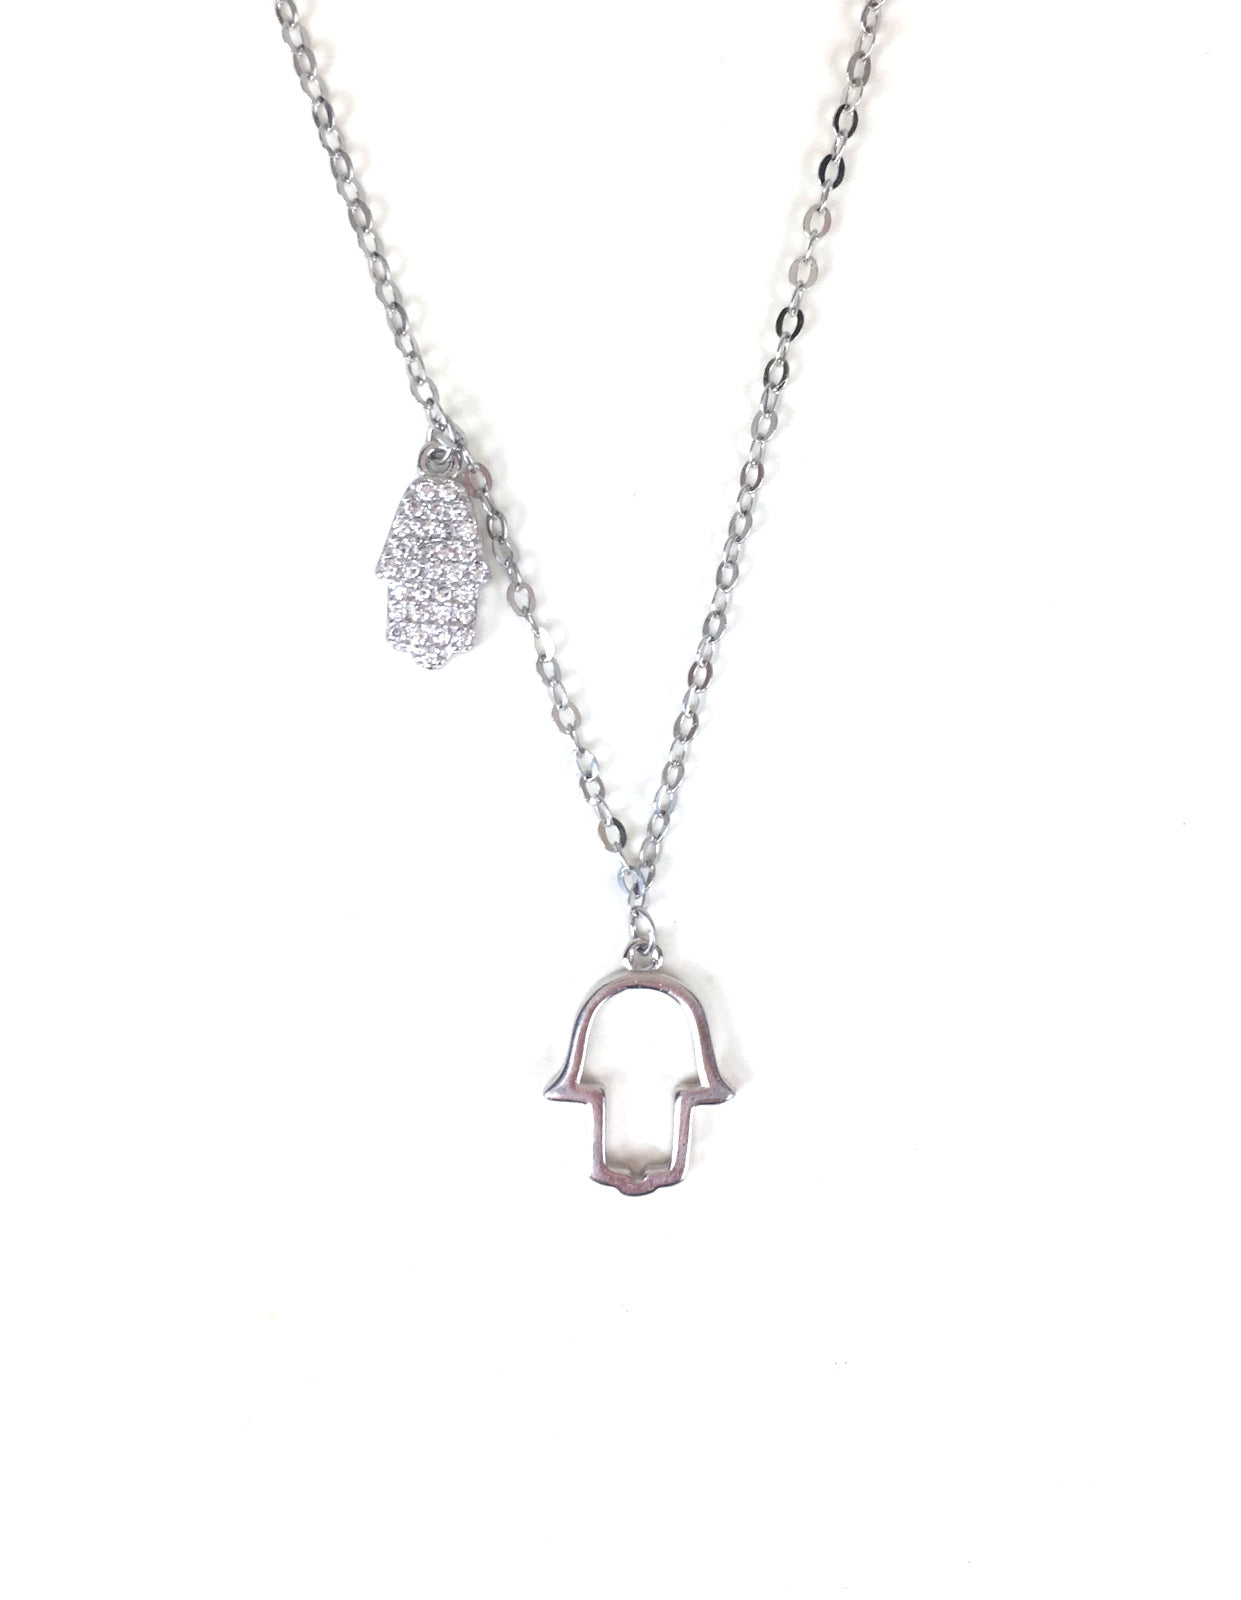 TWO HAMSA HANDS PAVE CZ STERLING SILVER NECKLACE